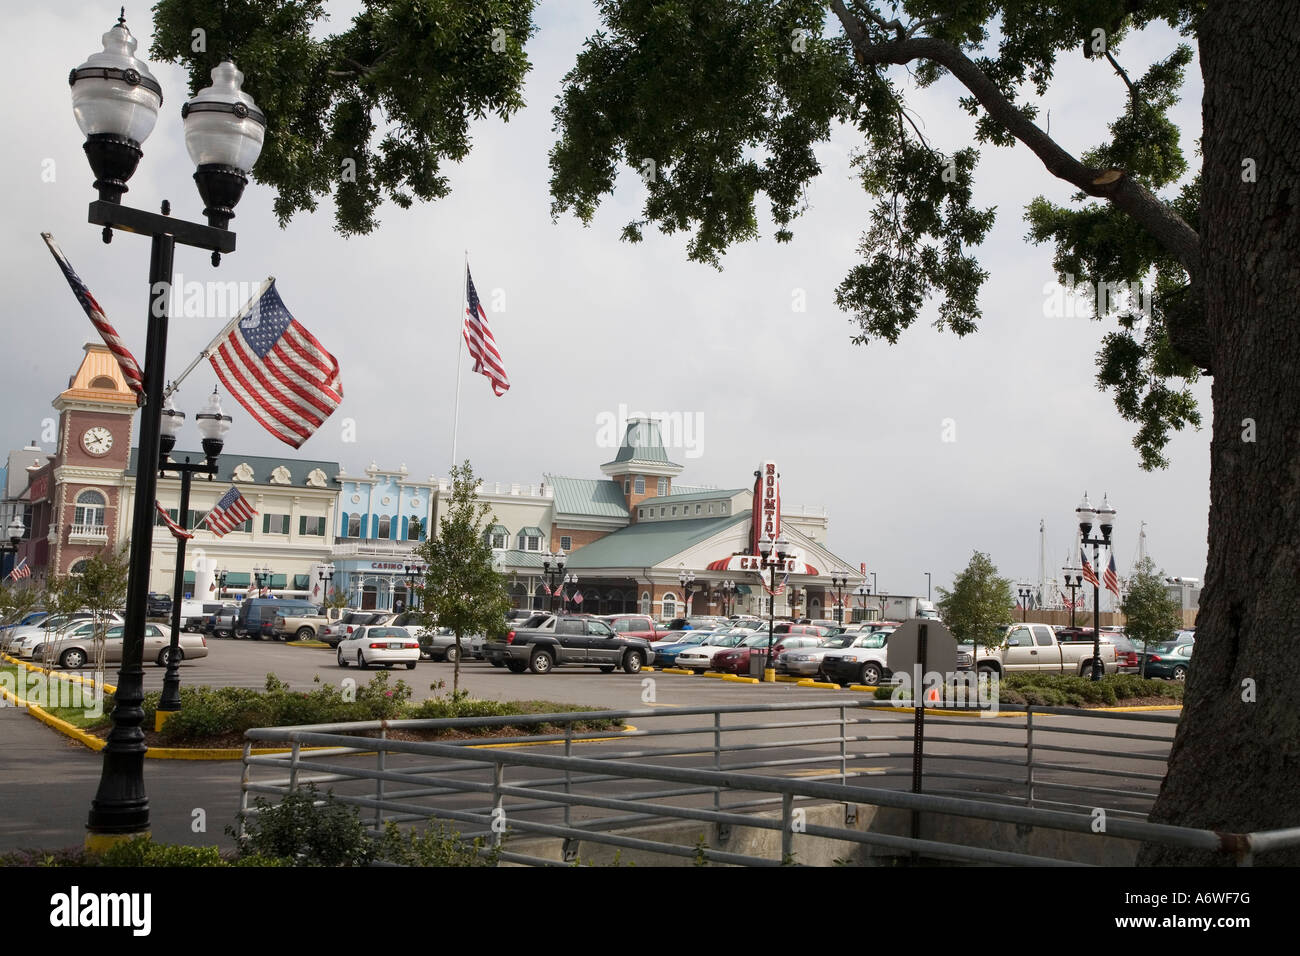 Biloxi Mississippi Boomtown Casino Reopened After Hurricane